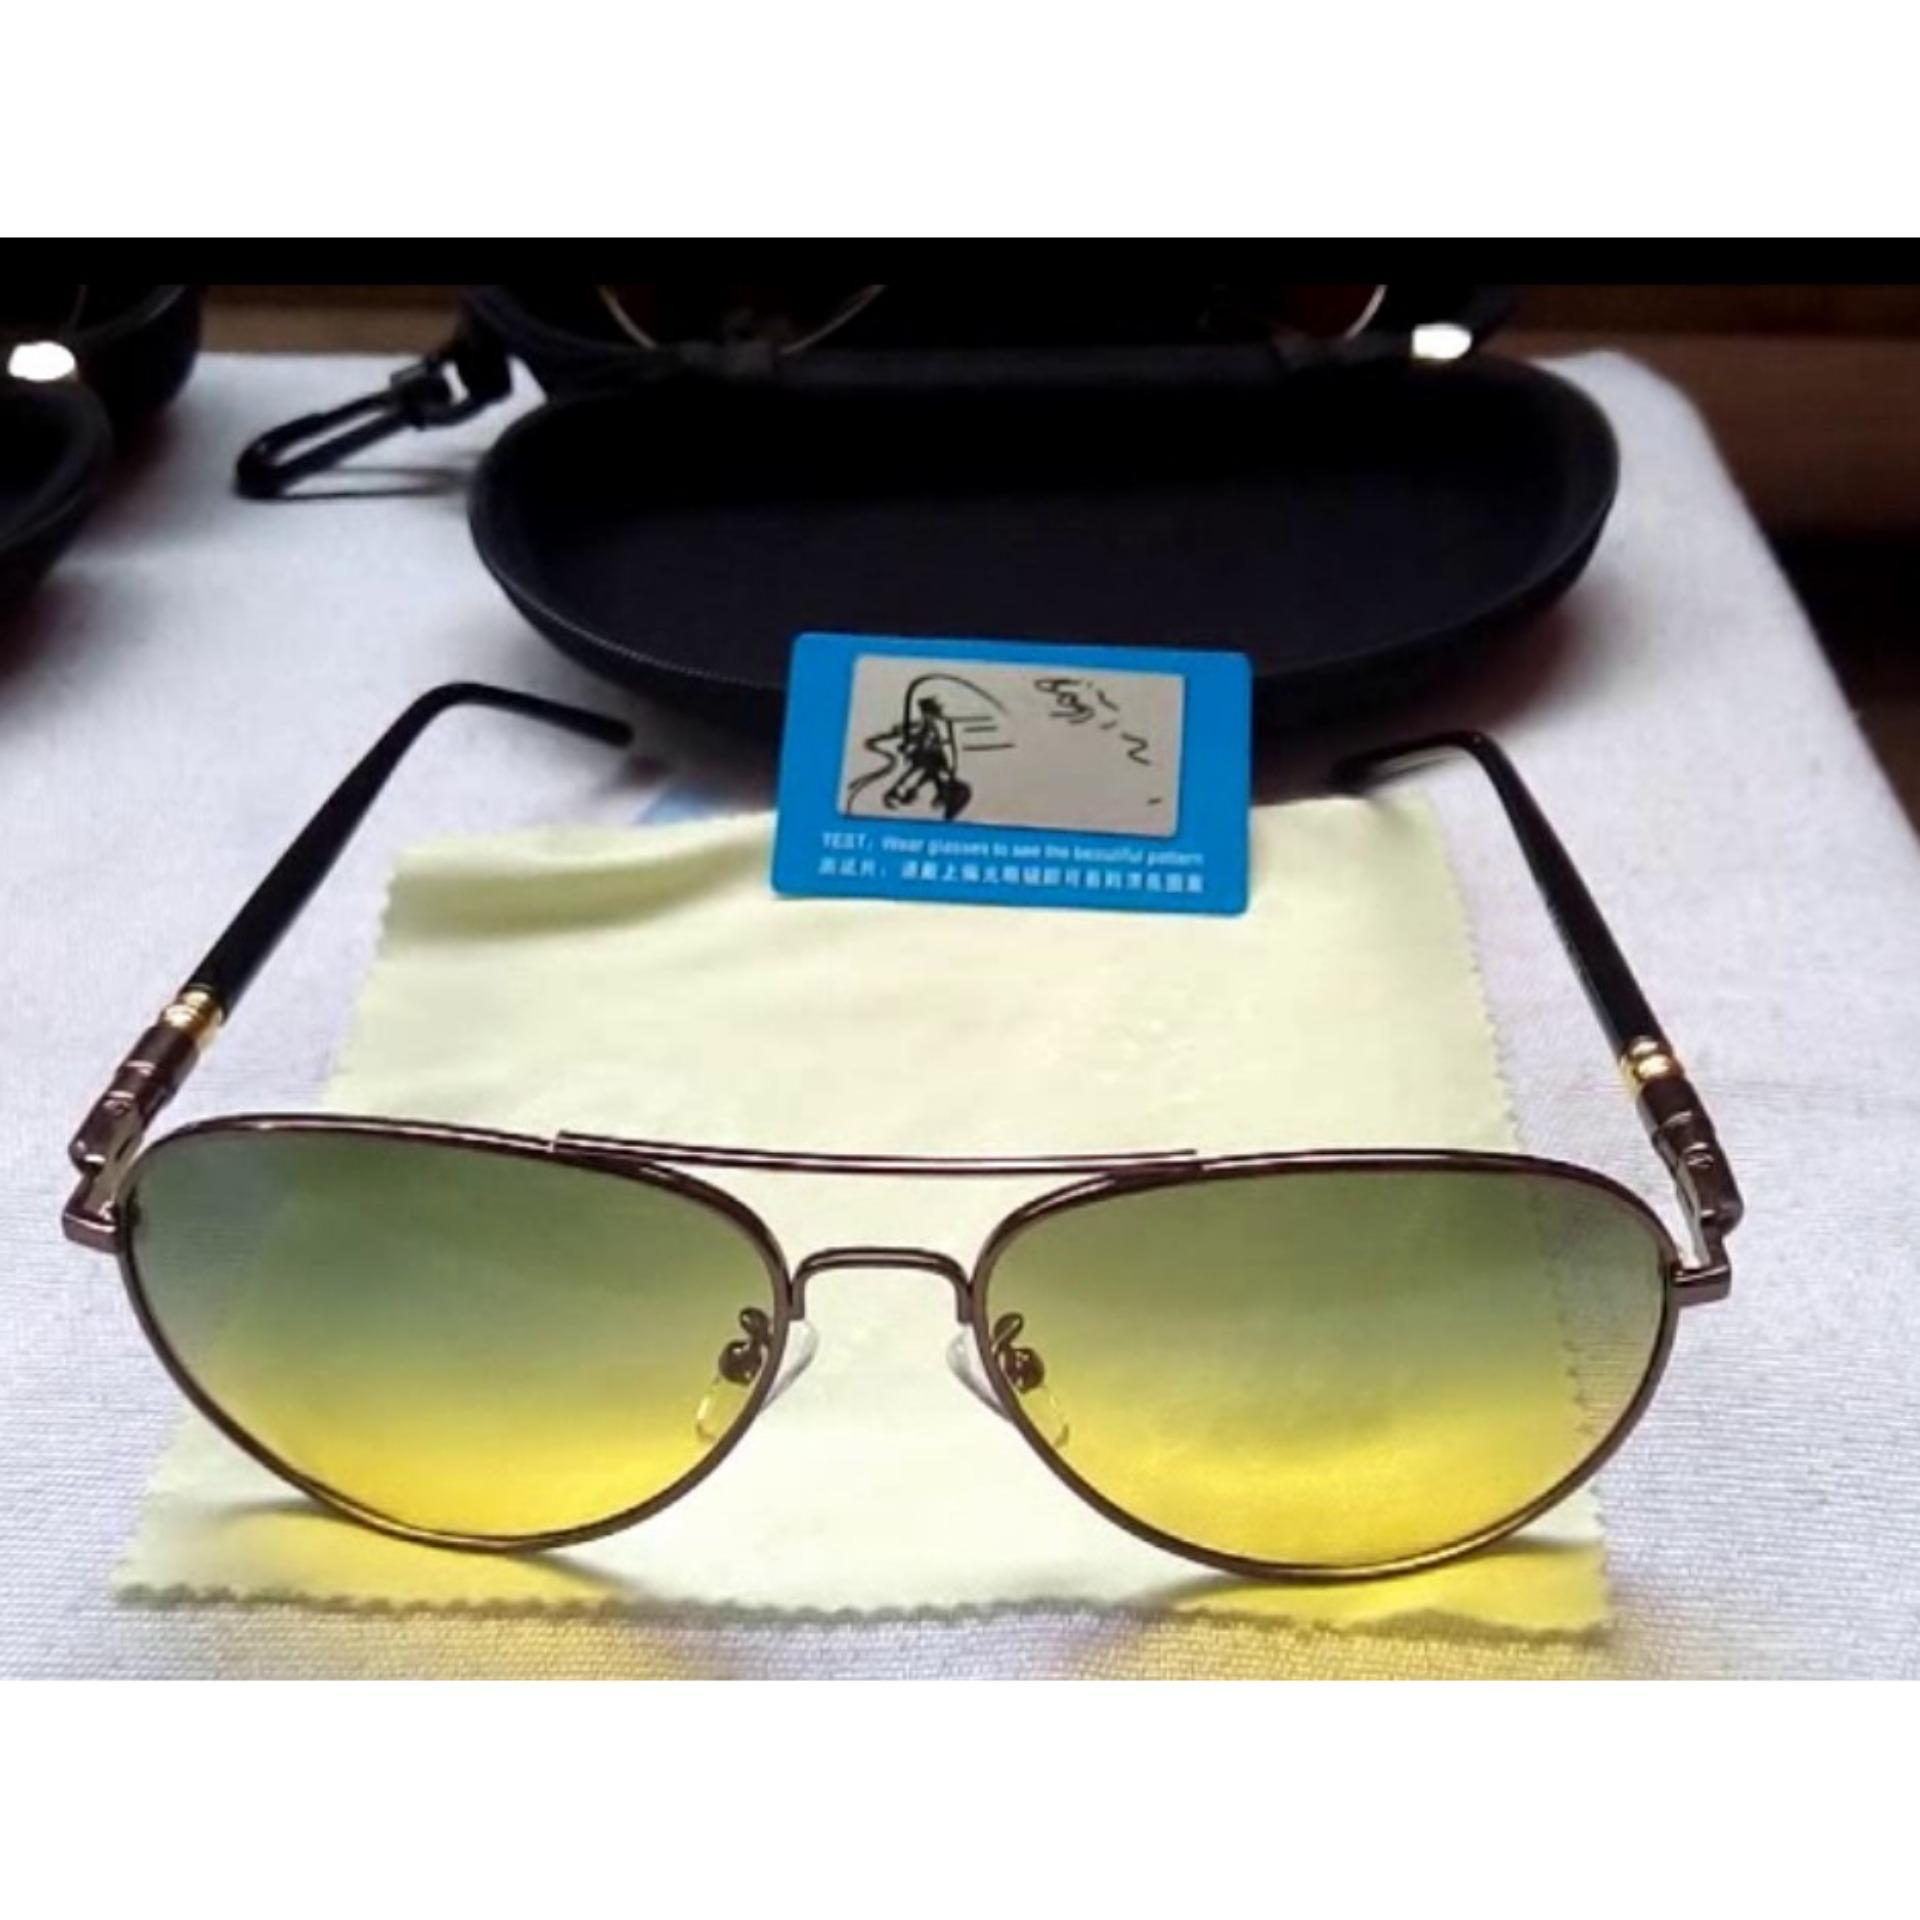 Review Tentang Kacamata Aviator Hd Polarized Anti Silau Siang Malam